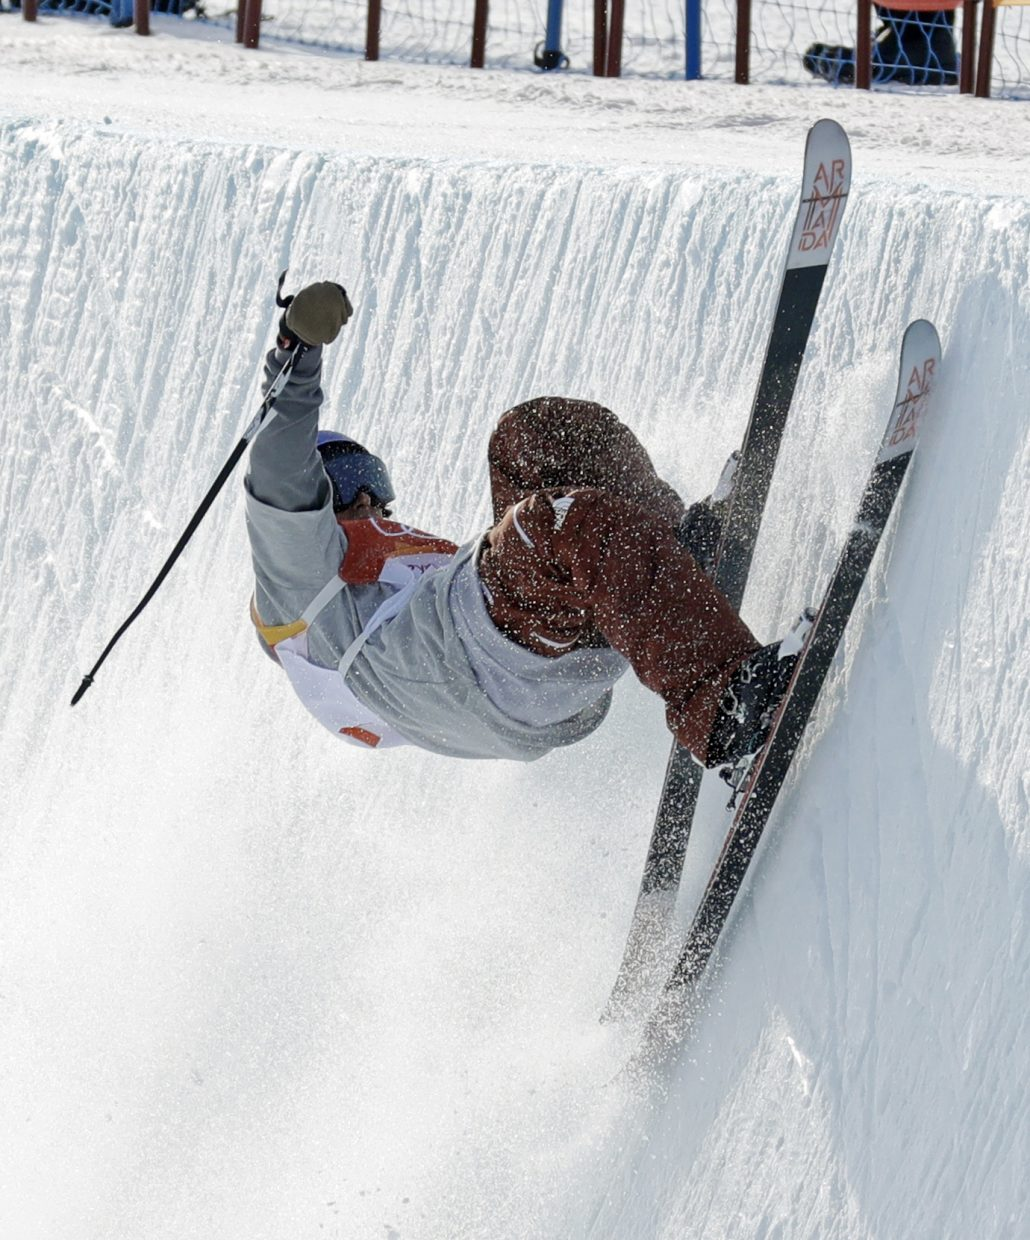 TorinYater-Wallace, of the United States, crashes during the men's halfpipe qualifying at Phoenix Snow Park at the 2018 Winter Olympics in Pyeongchang, South Korea, Tuesday, Feb. 20, 2018. (AP Photo/Kin Cheung)